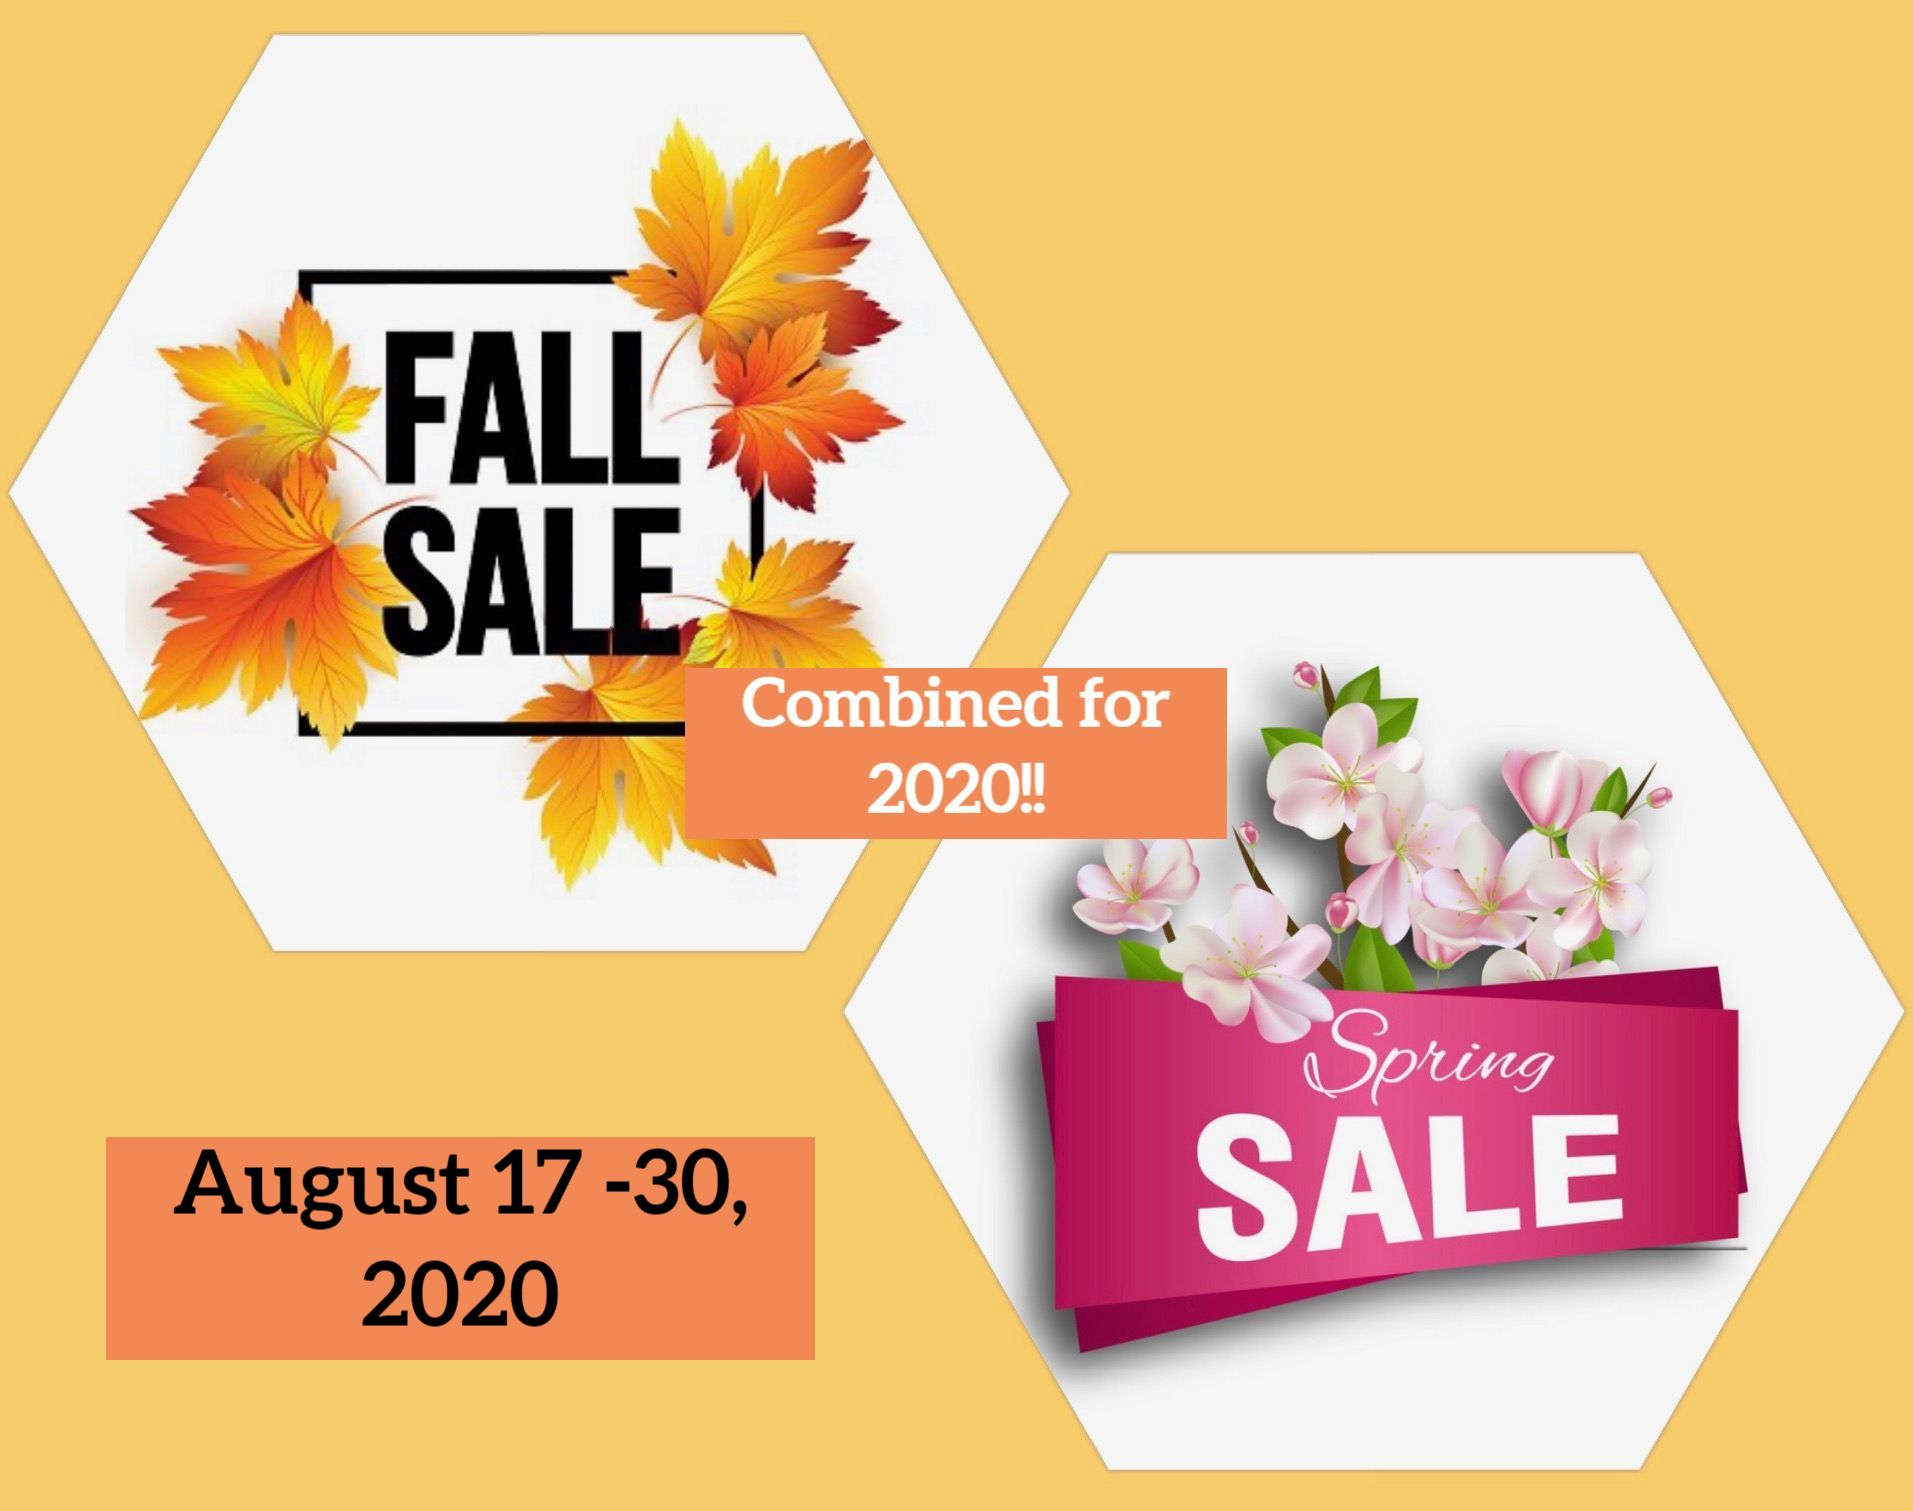 Spring & Fall 2020 Sale